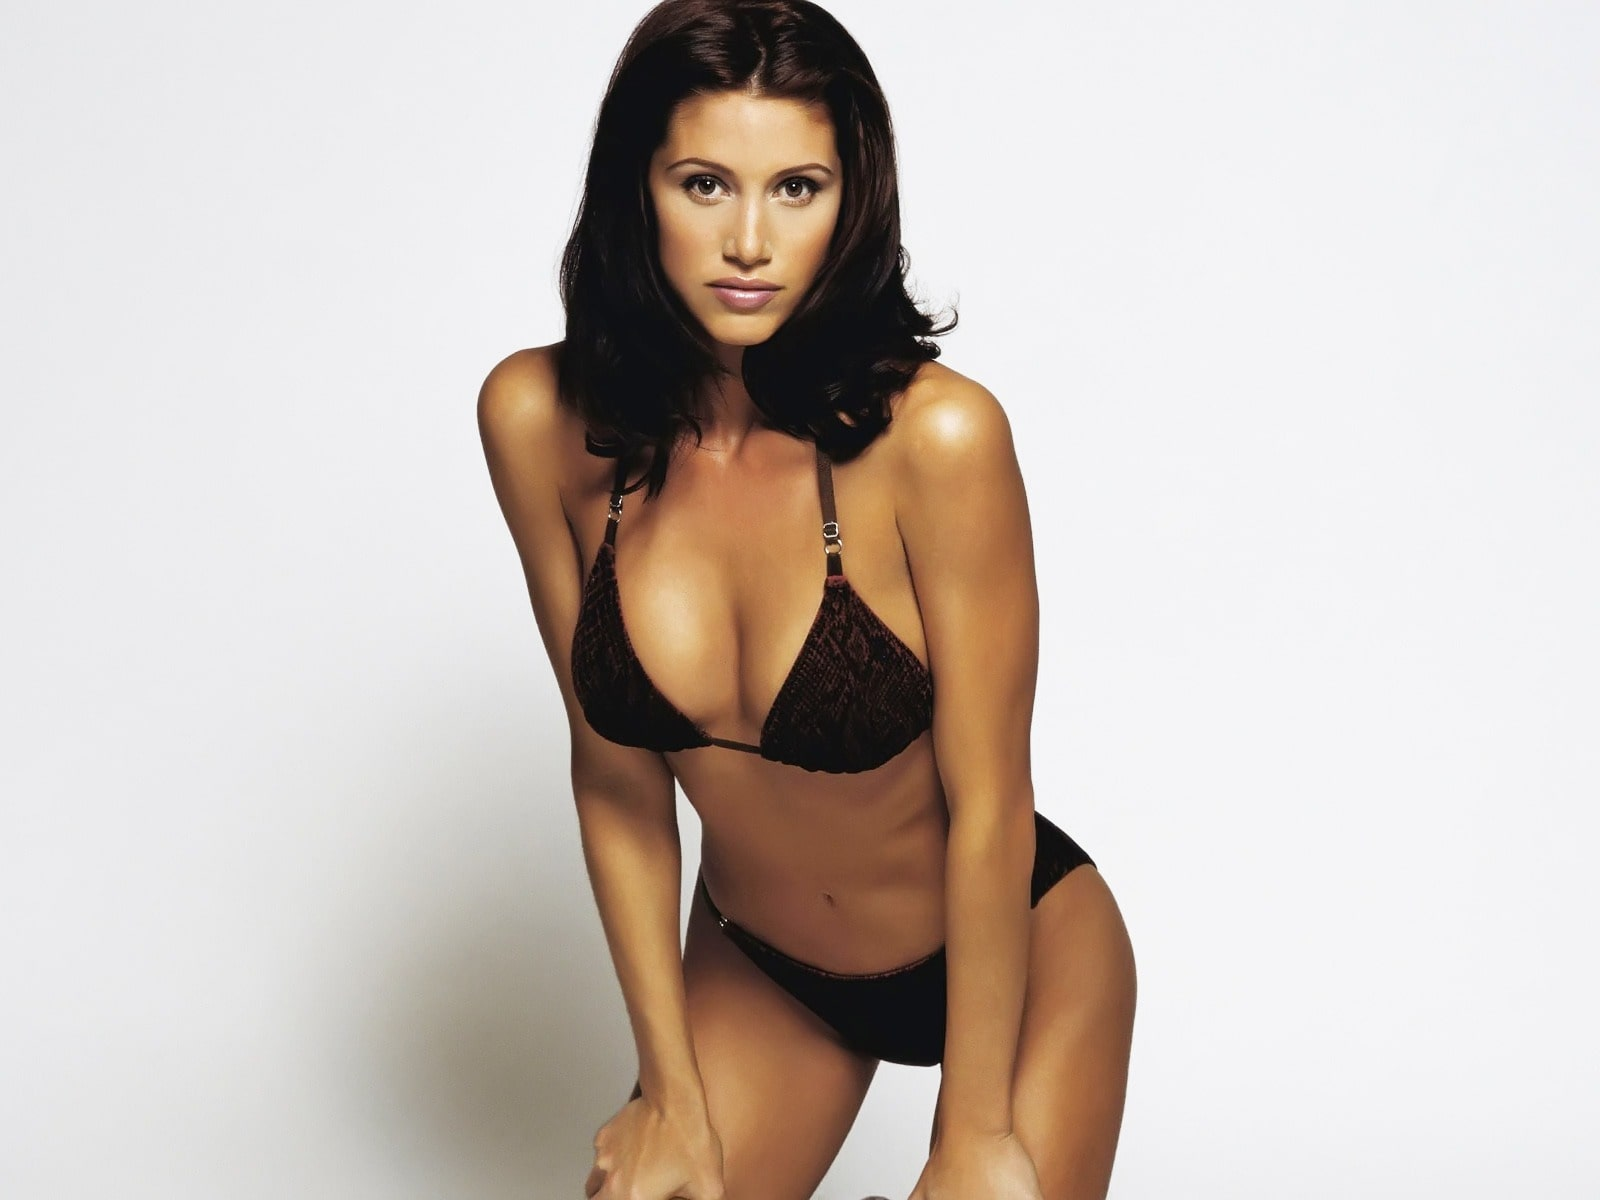 61 Hot Pictures Of Shannon Elizabeth Which Are Stunningly